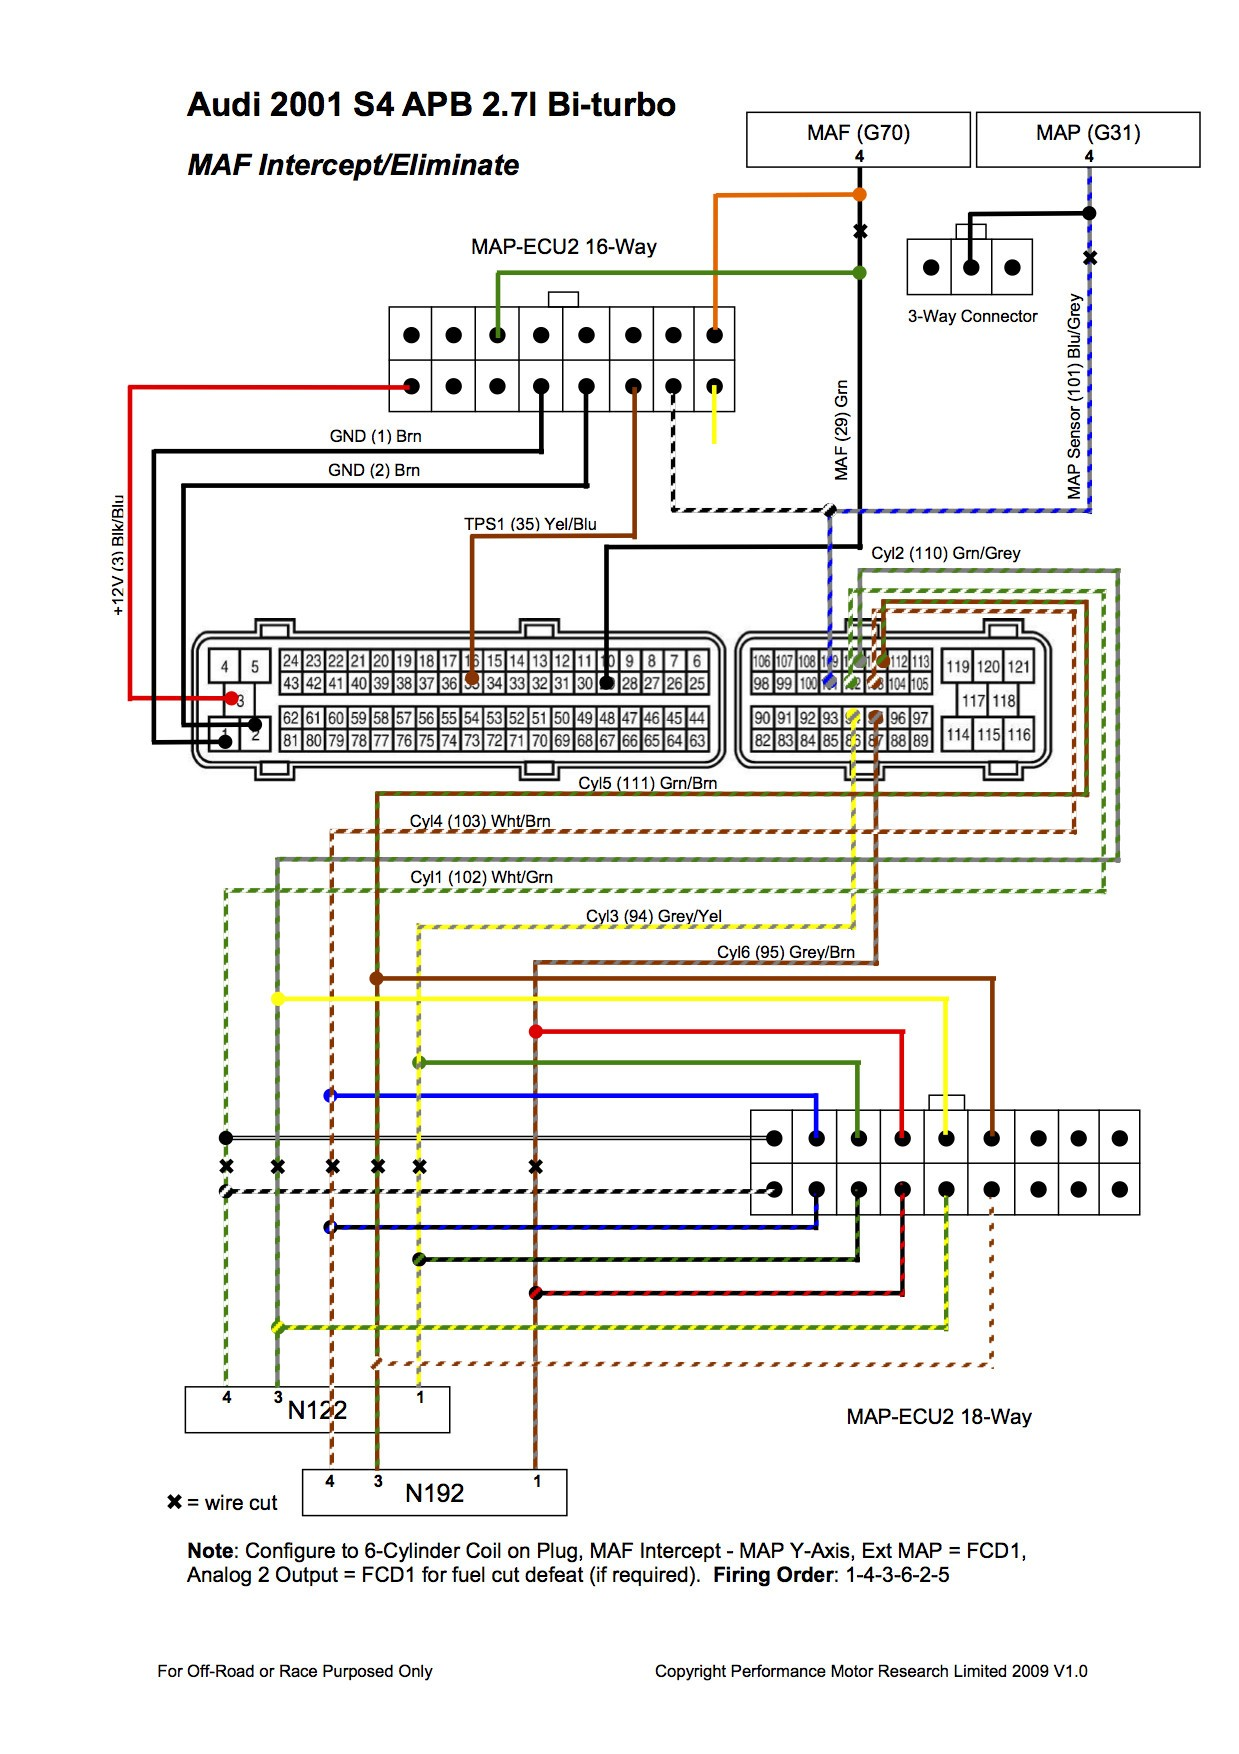 Wiring Diagram For 2002 Toyota Corolla | bored-office wiring diagram meta |  bored-office.perunmarepulito.itperunmarepulito.it